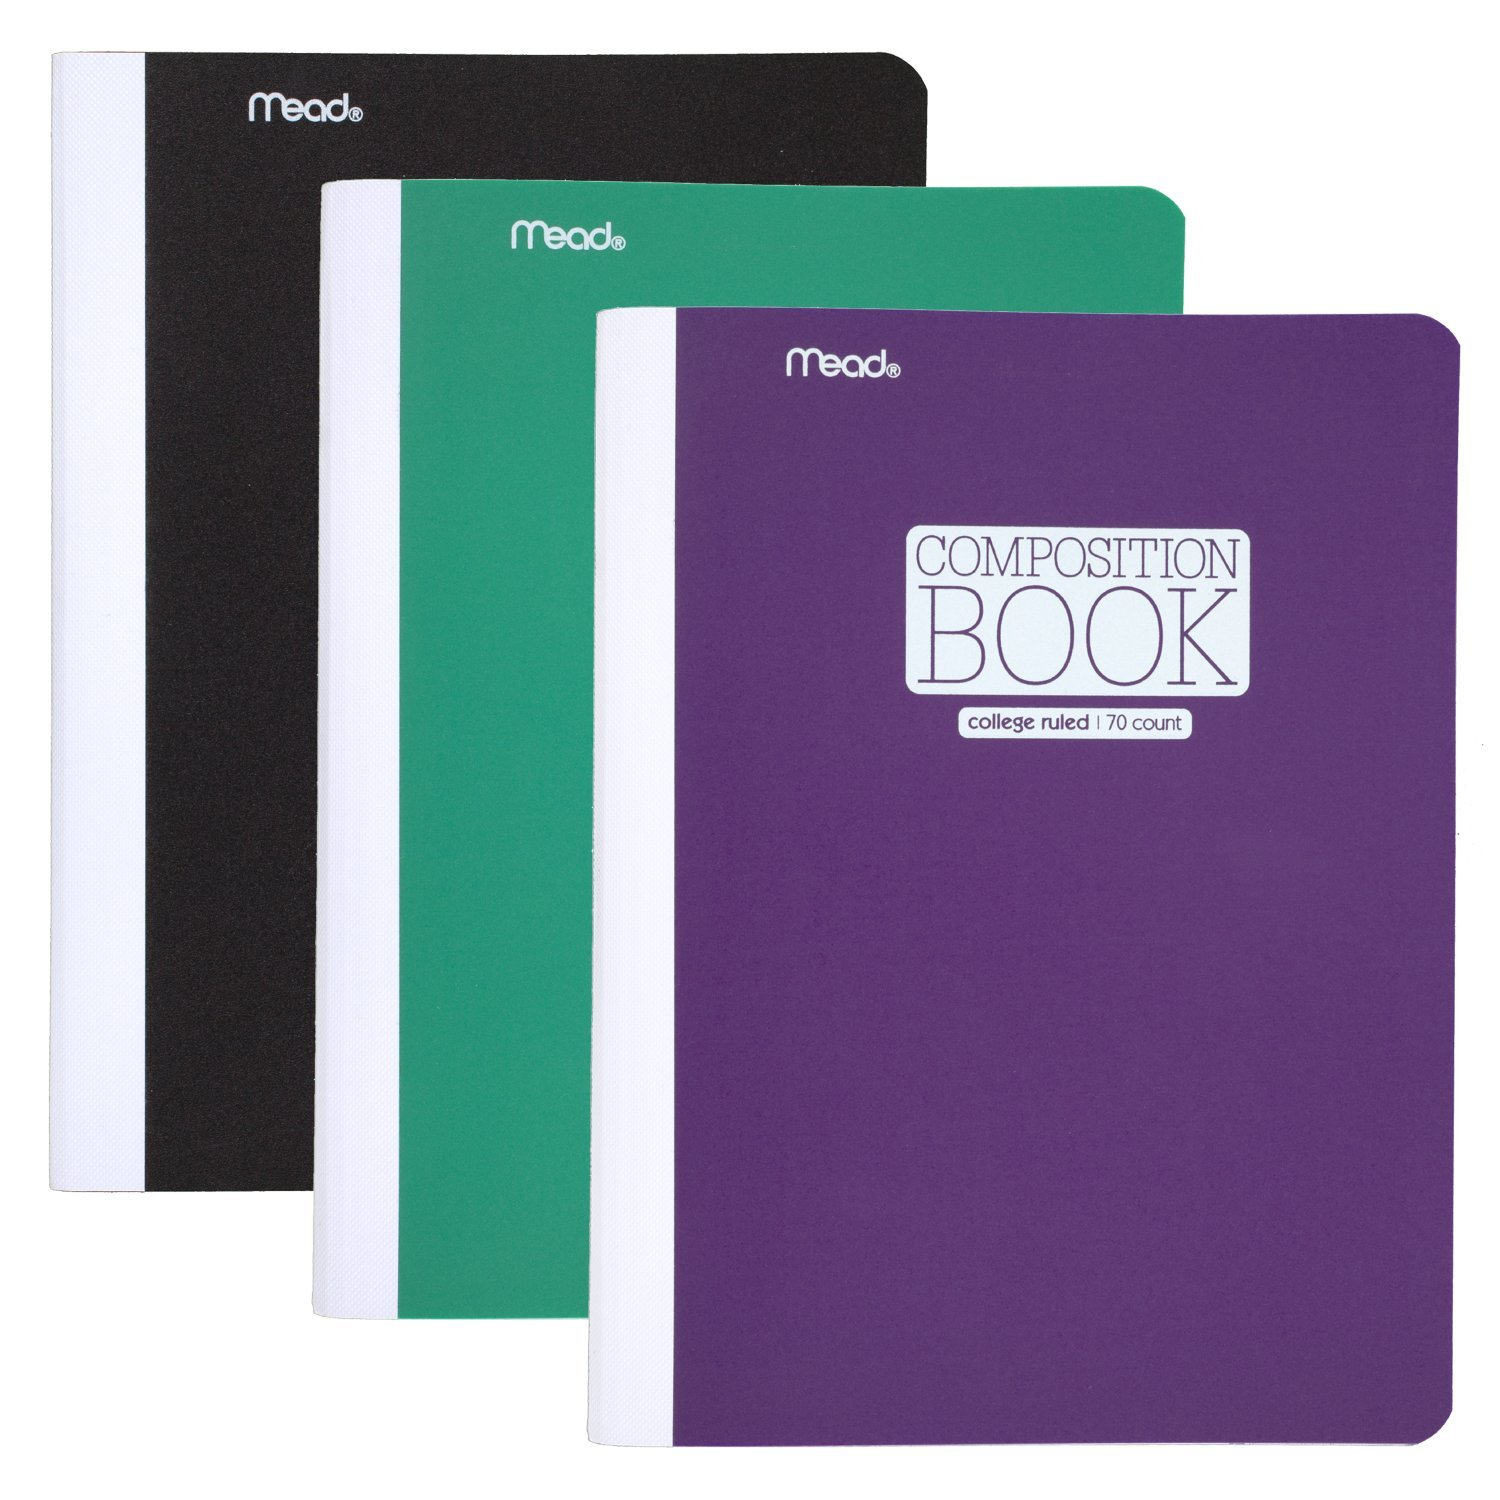 Mead Composition Book / Notebook, College Ruled Paper, 70 Sheets, Plastic, 9-3/4'' x 7-1/2'', Green, Black, Purple, 3 Pack (38977)